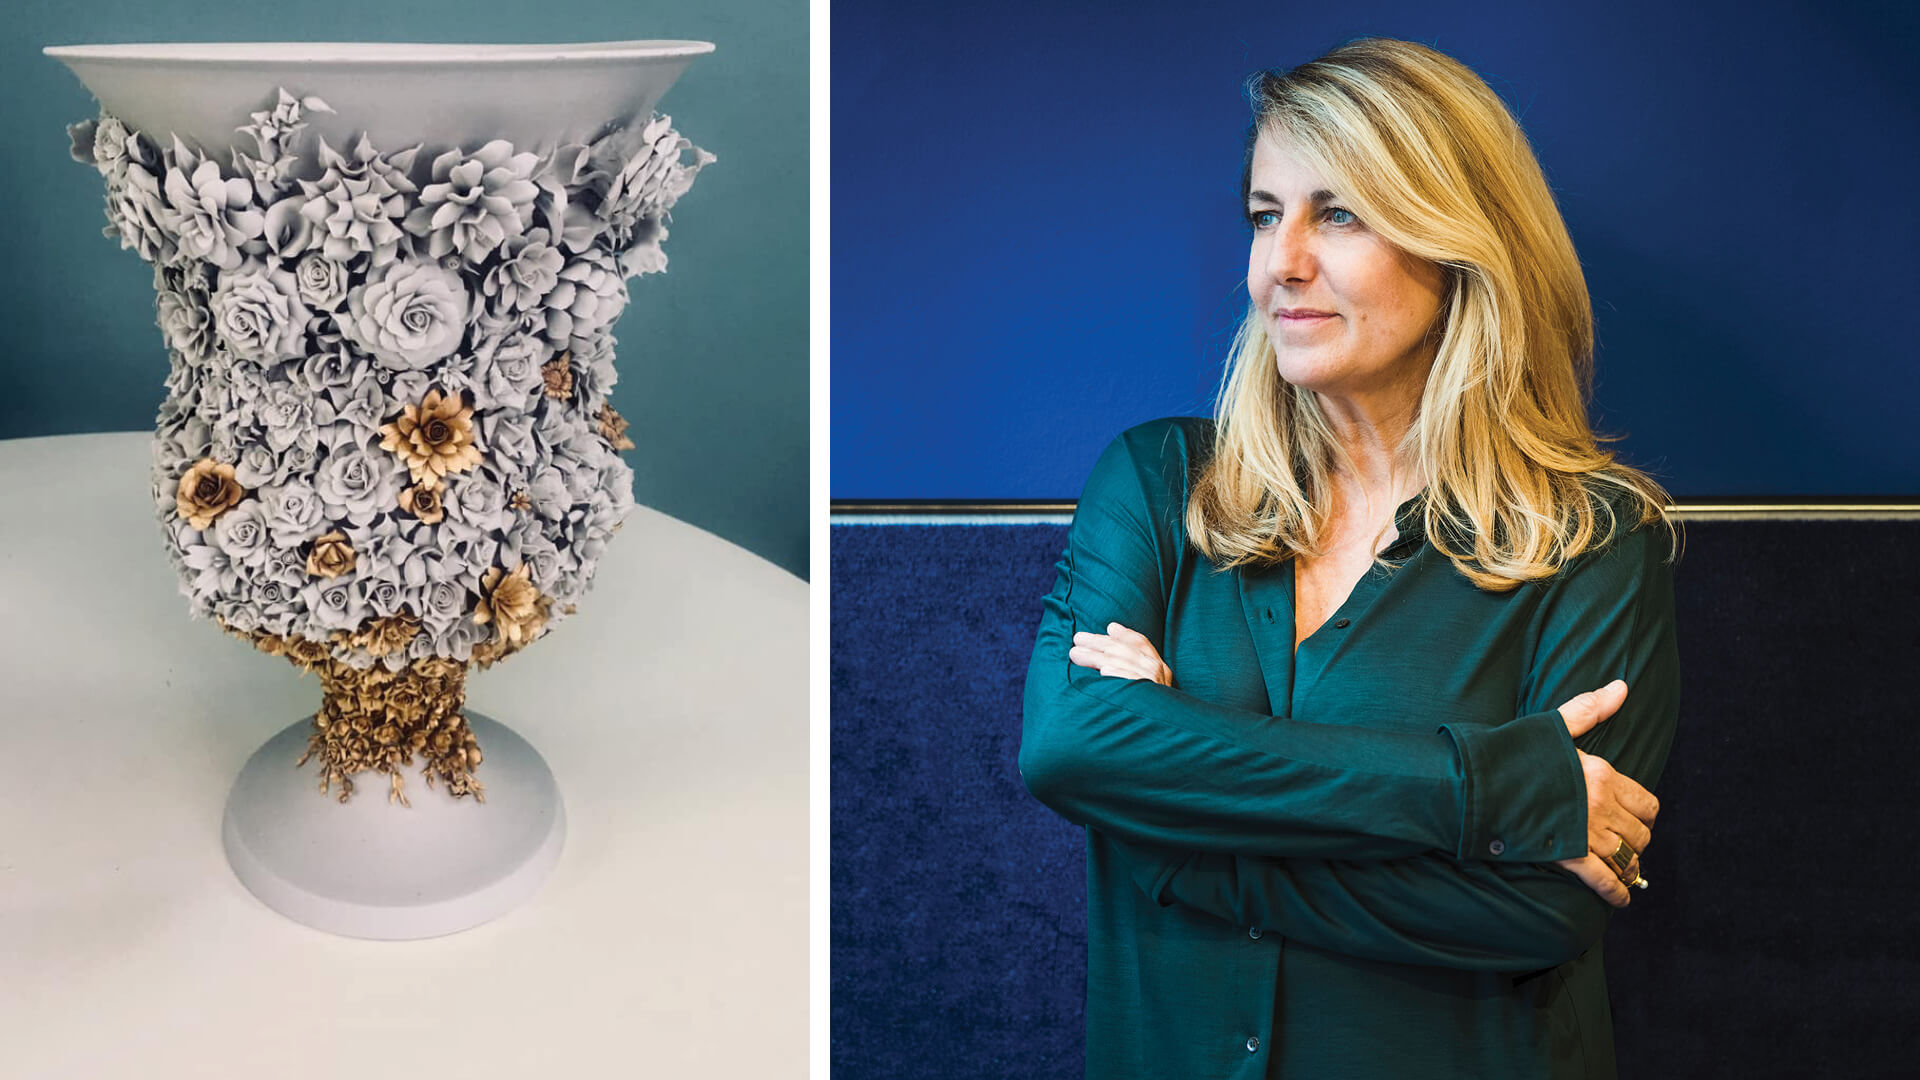 Patricia Urquiola crafts 'garden on the table' porcelain collection for EDIT Napoli